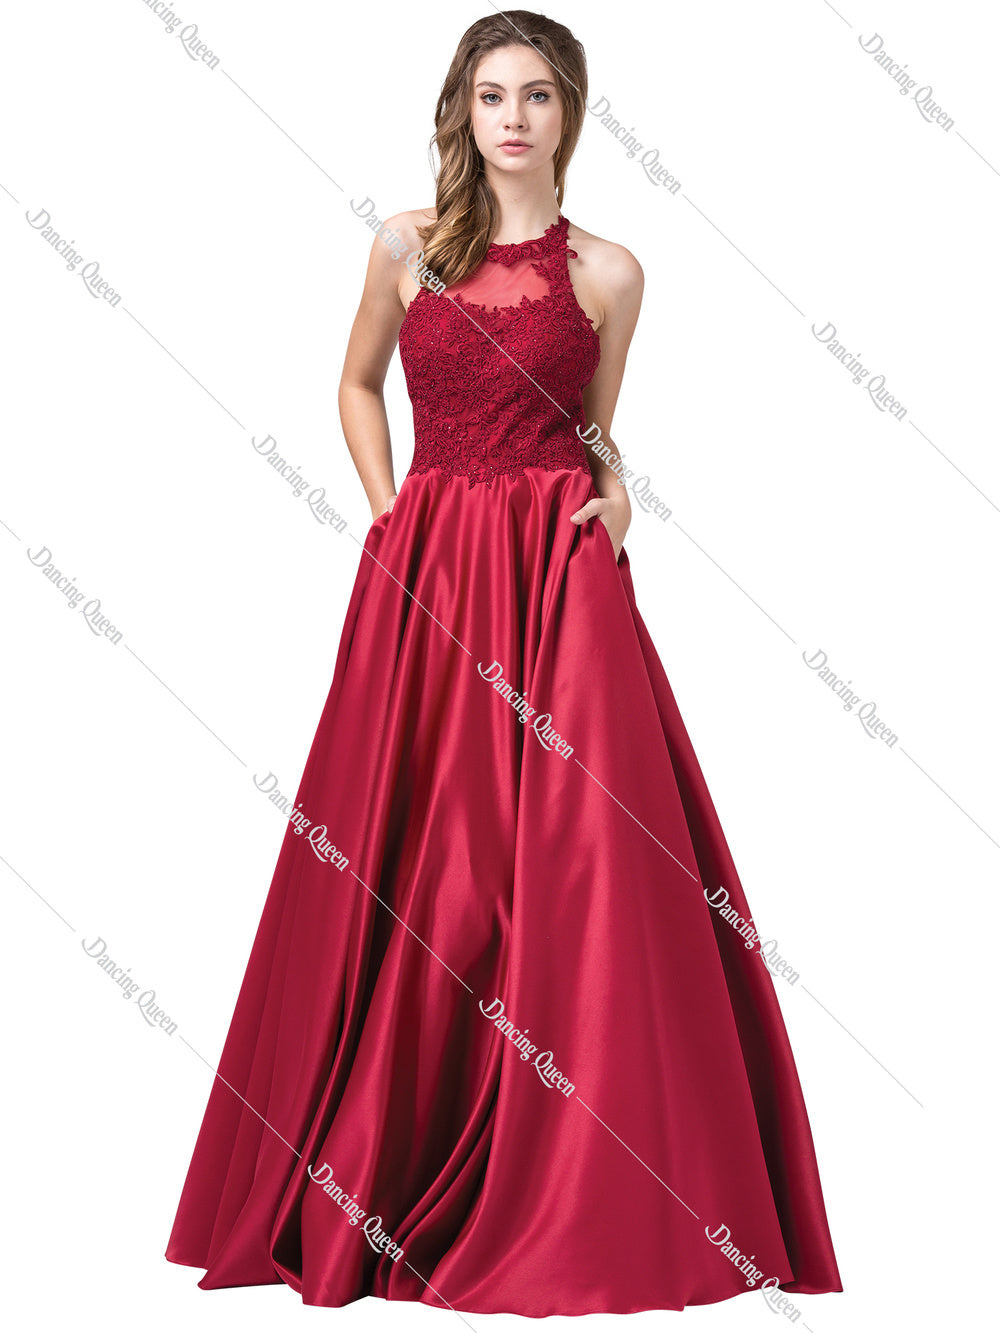 Dancing Queen DQ 2625 - Long Satin Halter Ball Gown with Lace Embroidered Top Spaghetti Straps & Pockets - Diggz Prom